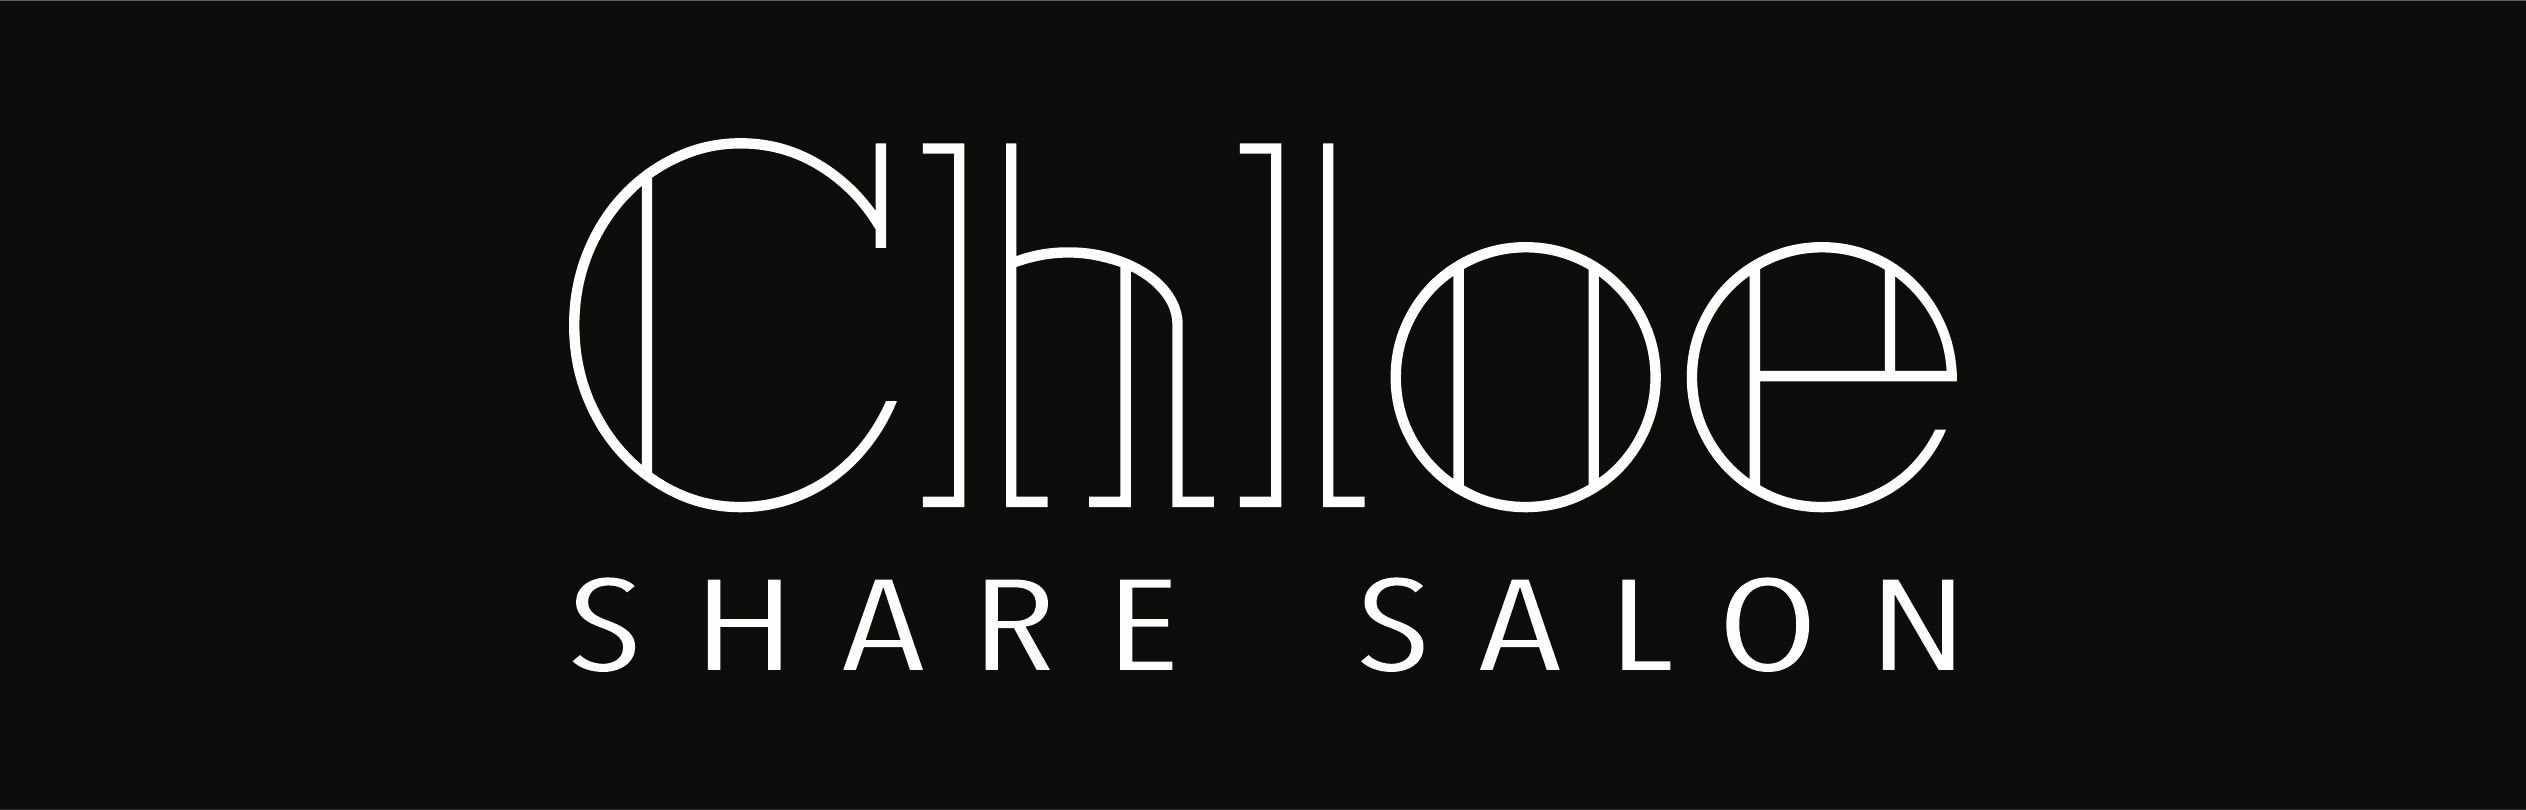 Chloe SHARE SALON